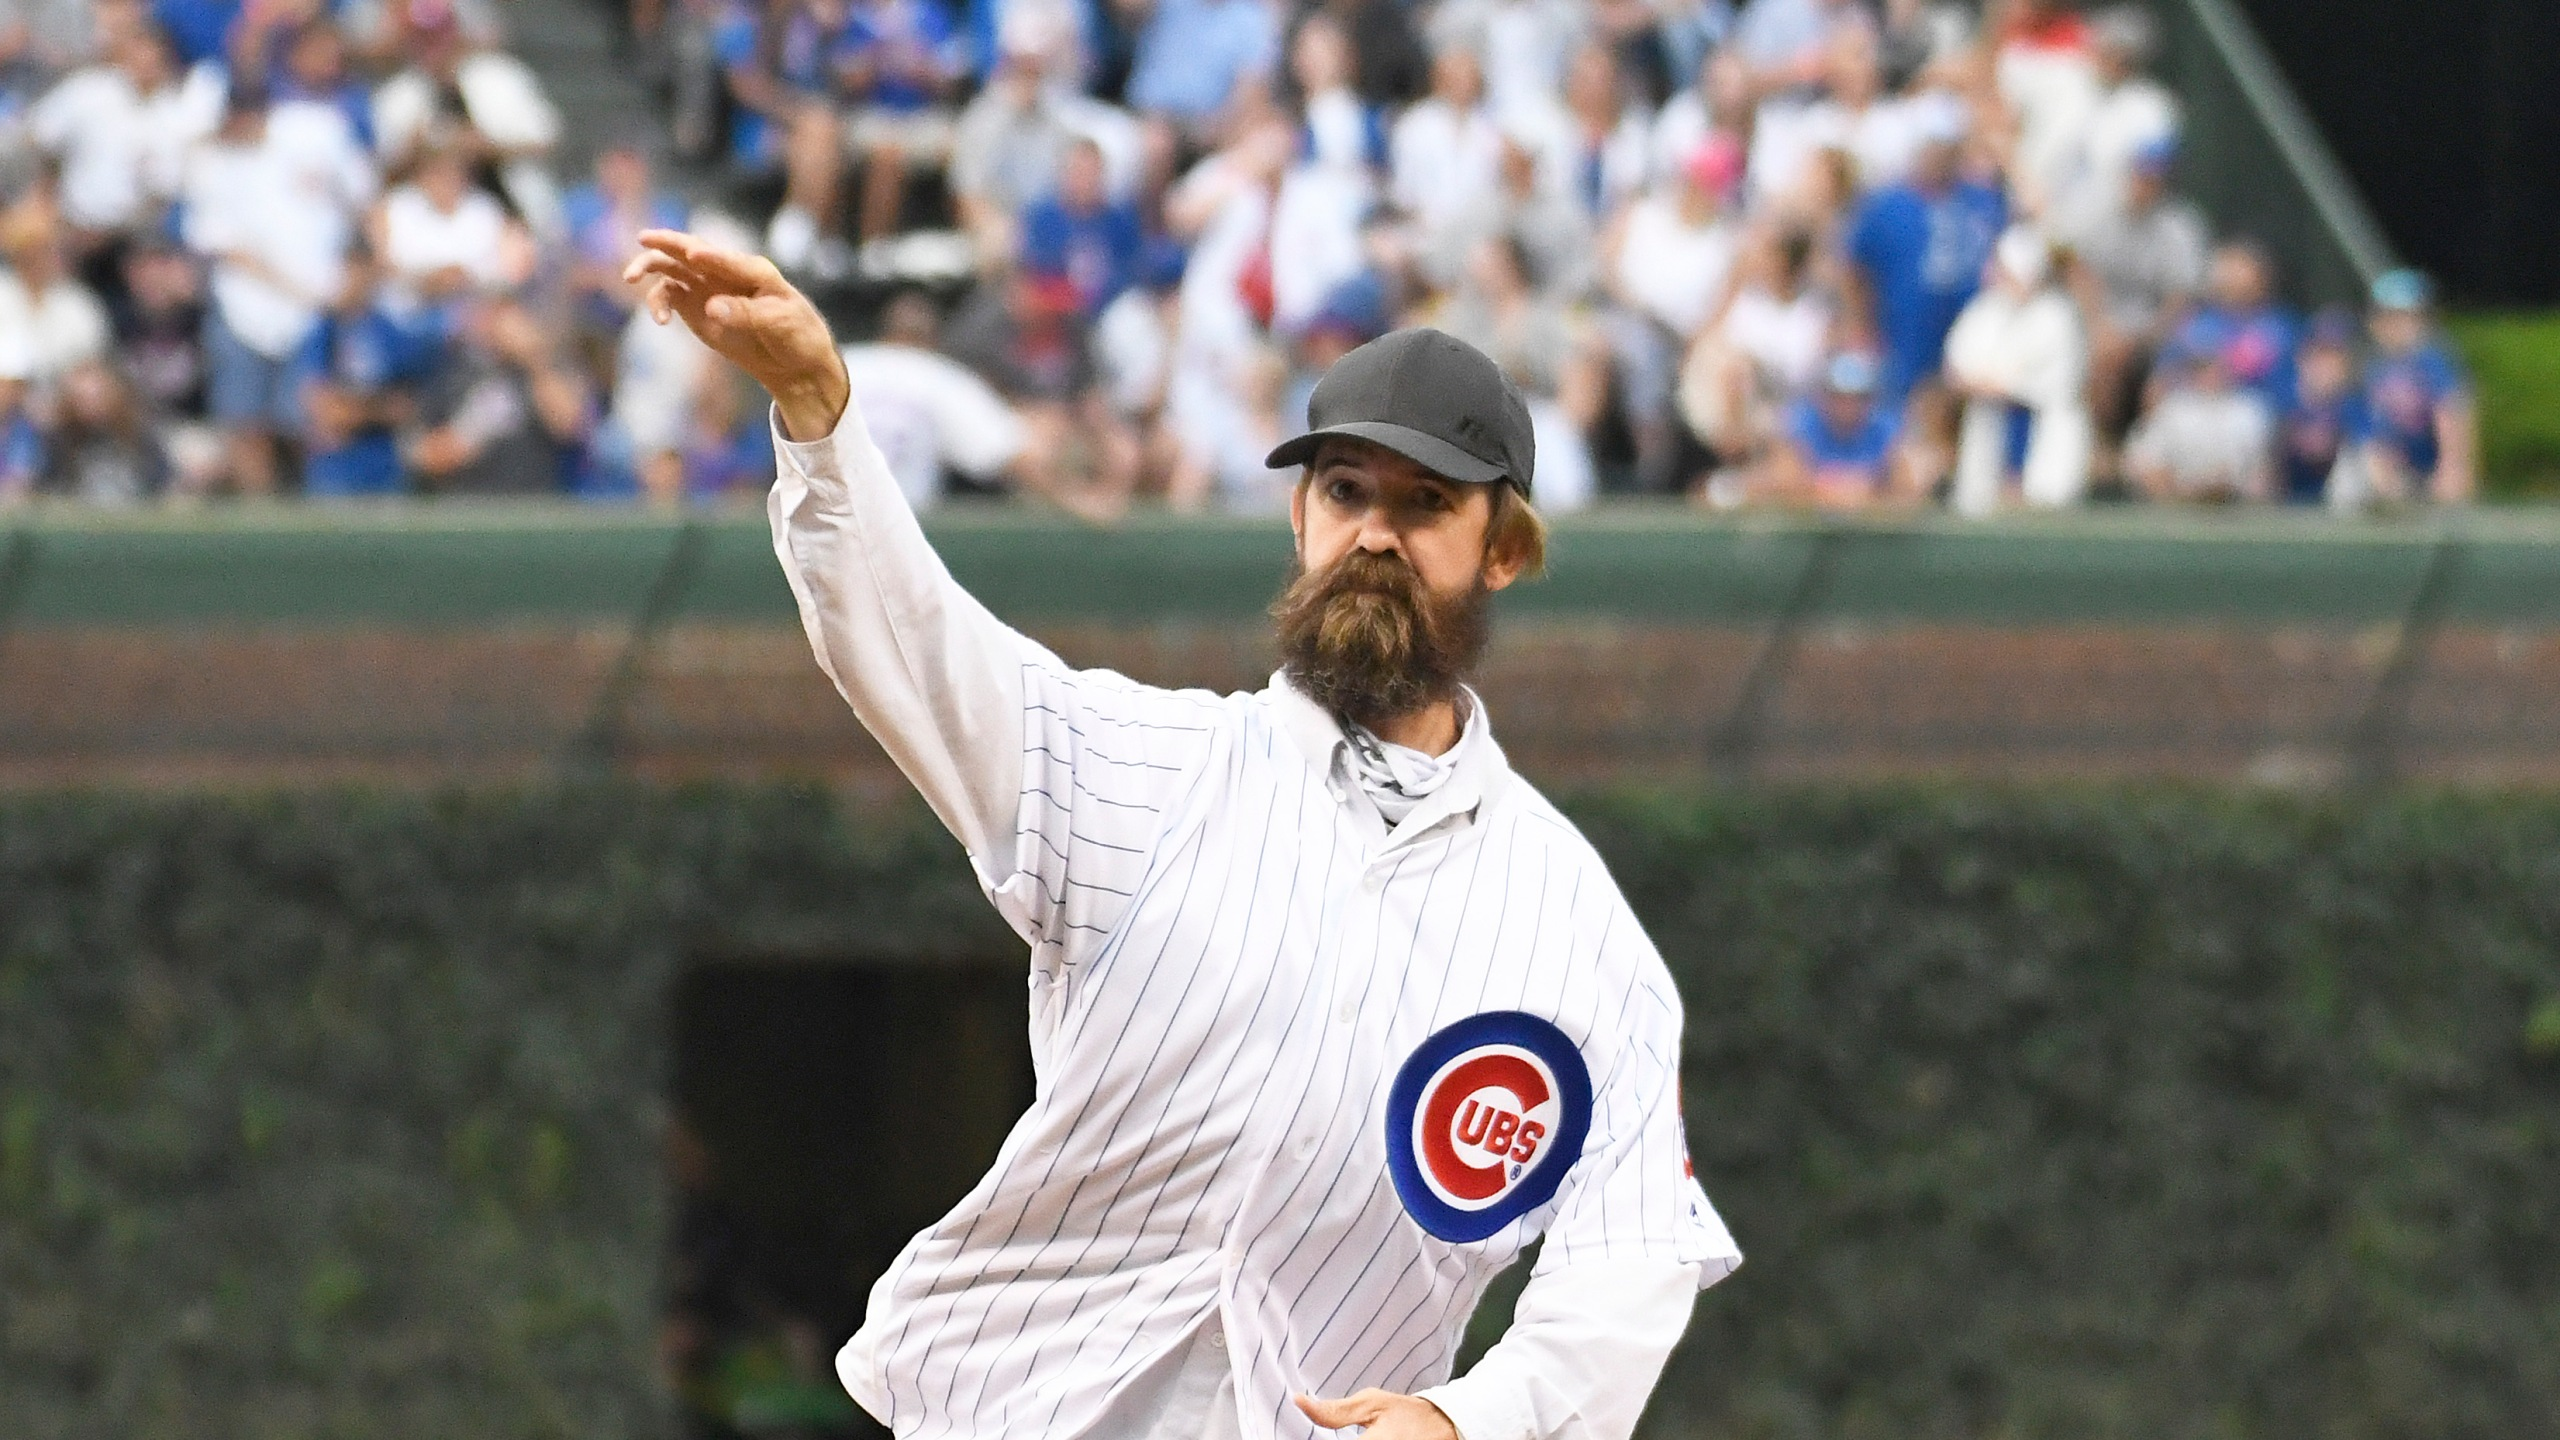 Alligator expert and trapper Frank Robb throws out a ceremonial first pitch before the game between the Chicago Cubs and the Cincinnati Reds at Wrigley Field on July 16, 2019. (Credit: David Banks/Getty Images)